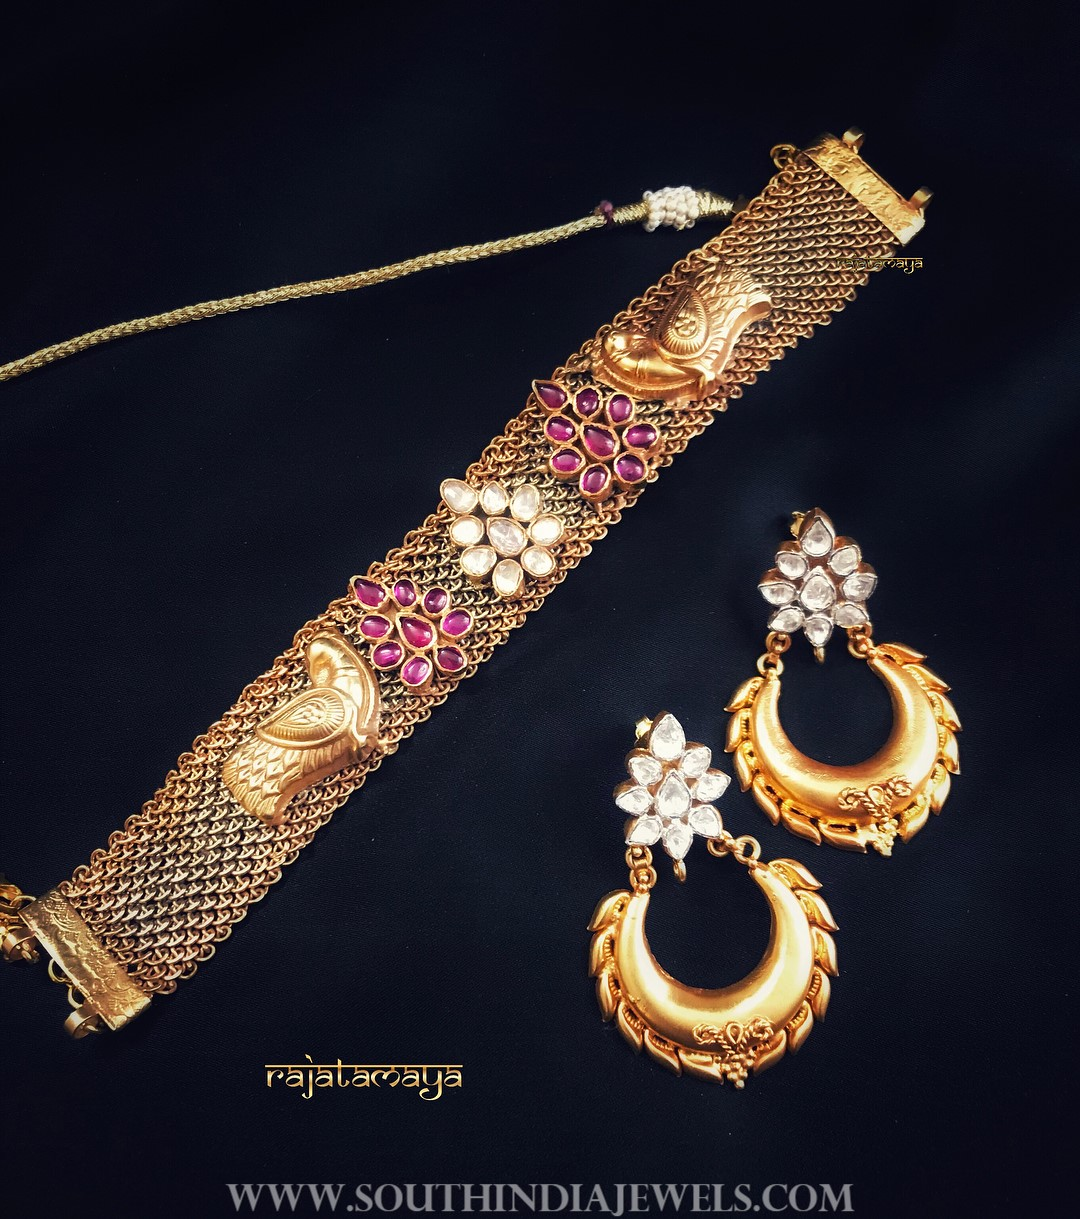 Antique Choker & Earrings From Rajatamaya